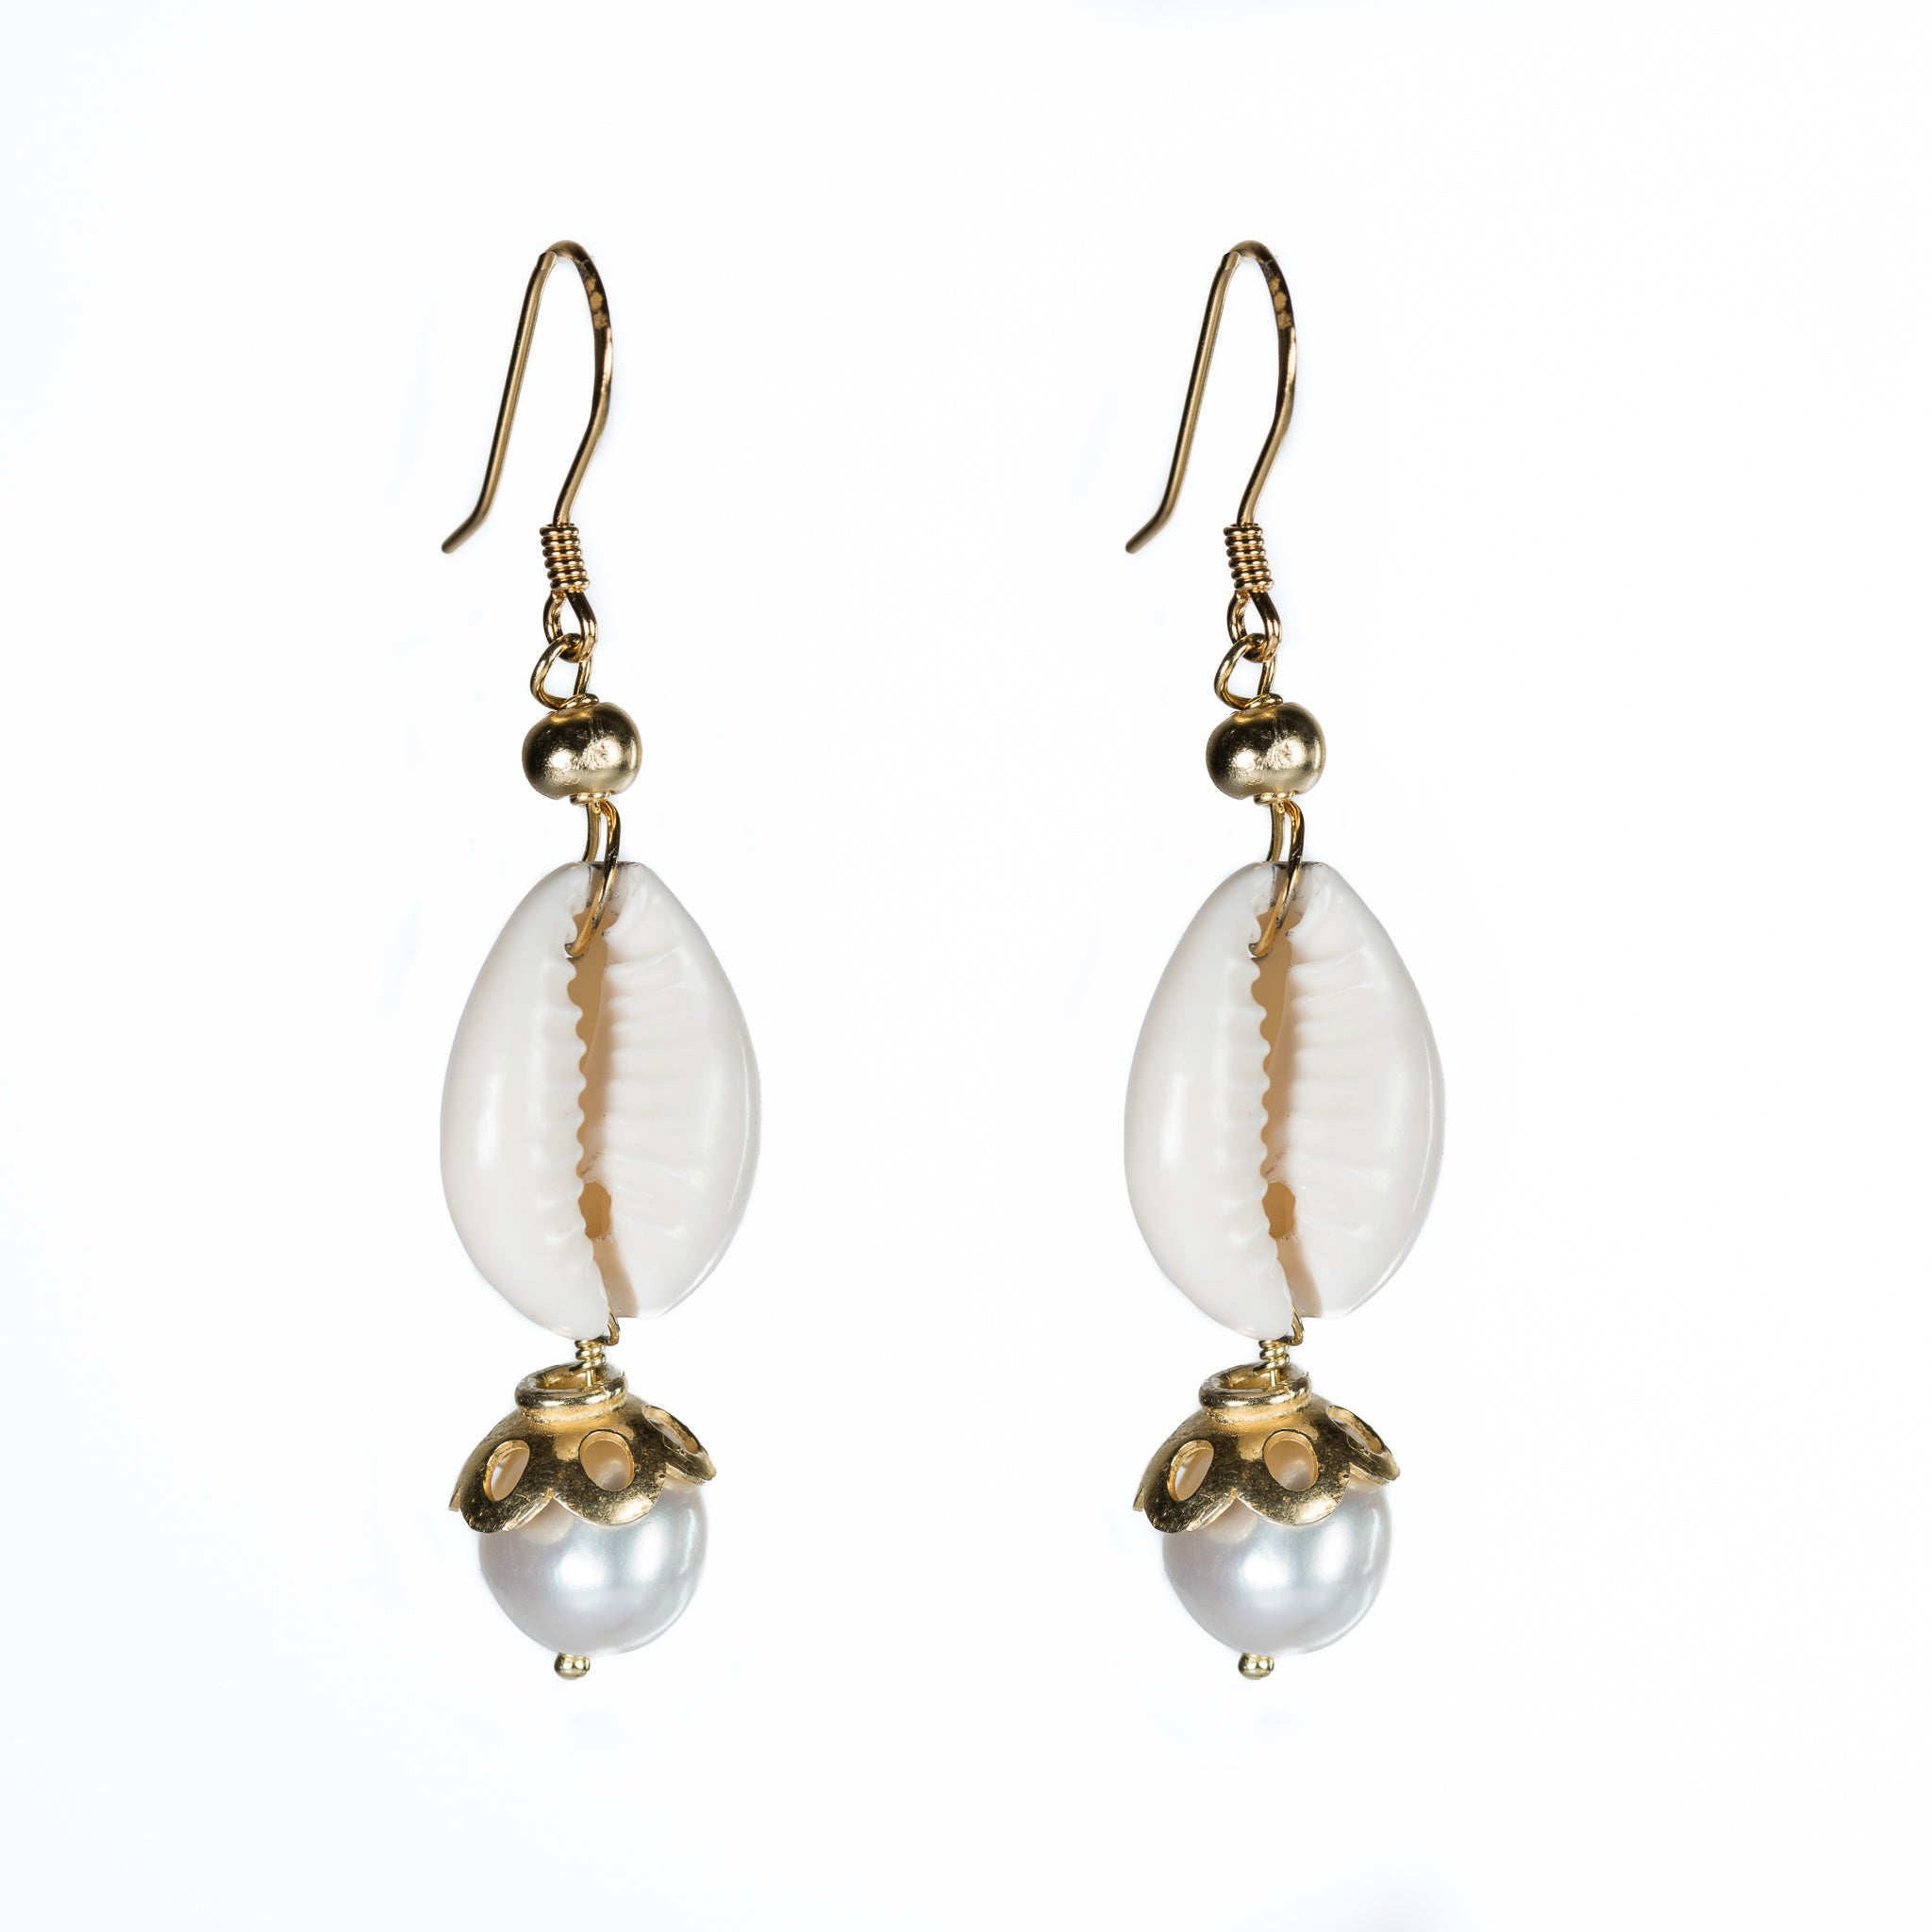 Bombom Heat Cowrie Shell Pearl Earrings